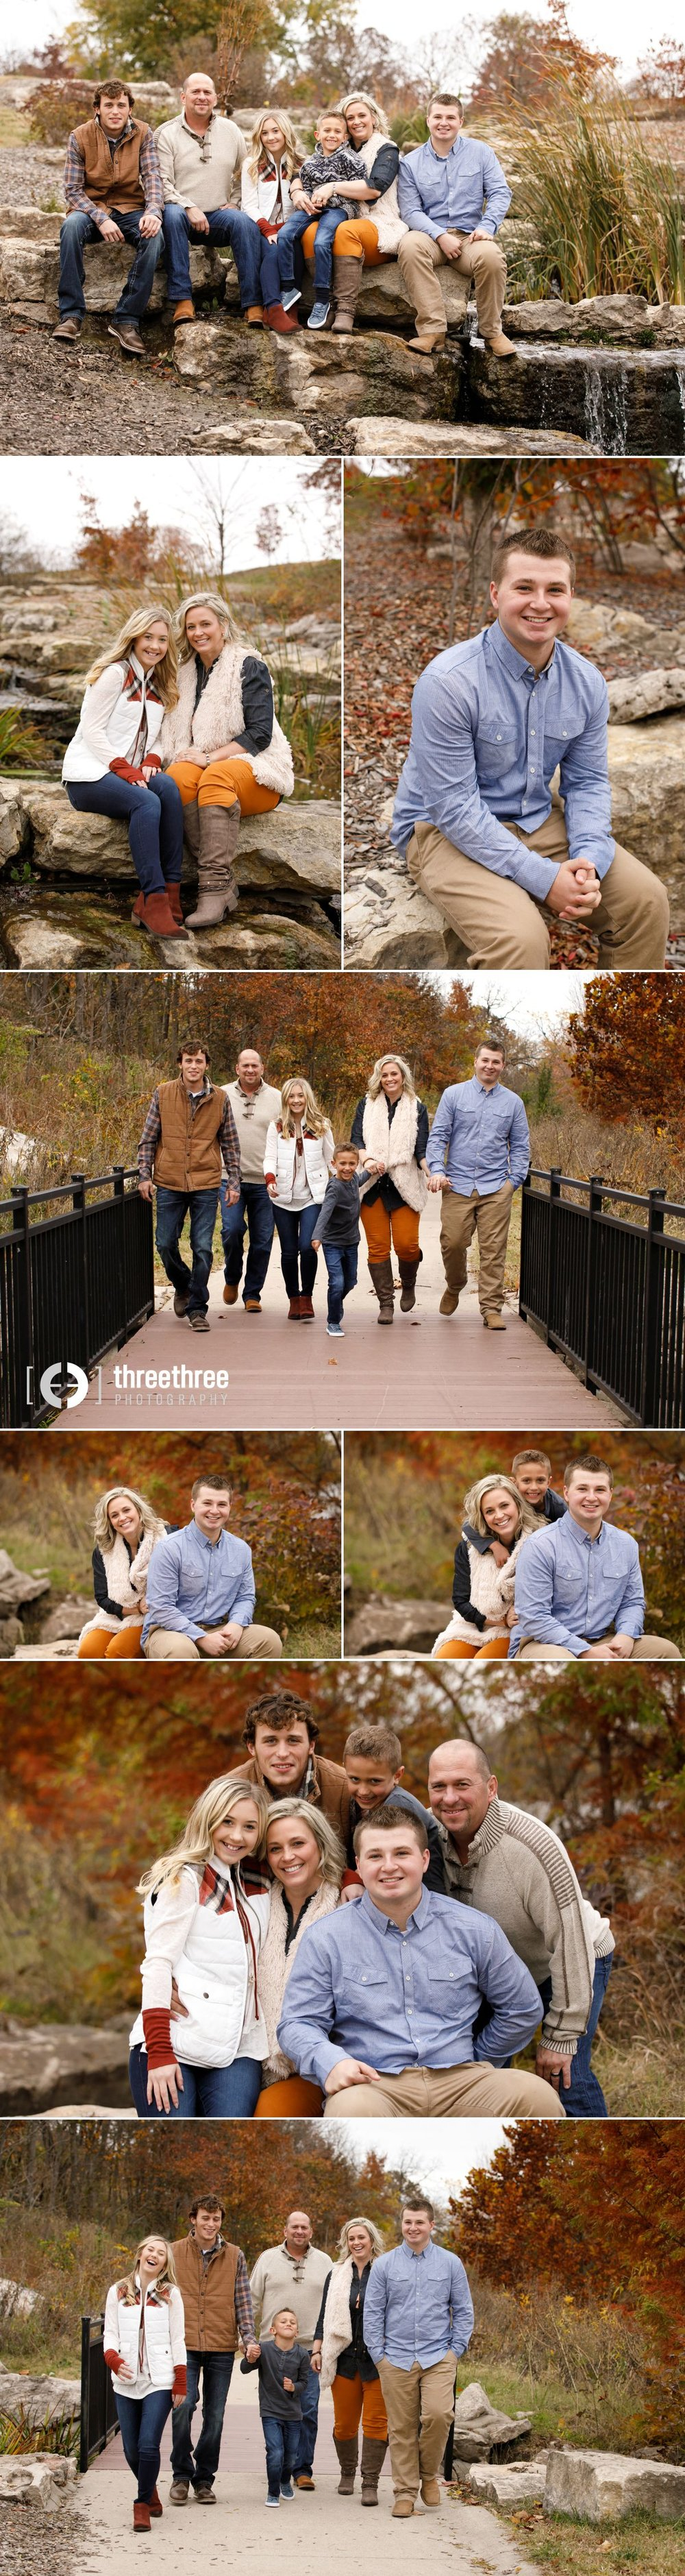 Fall Family Photos 3.jpg